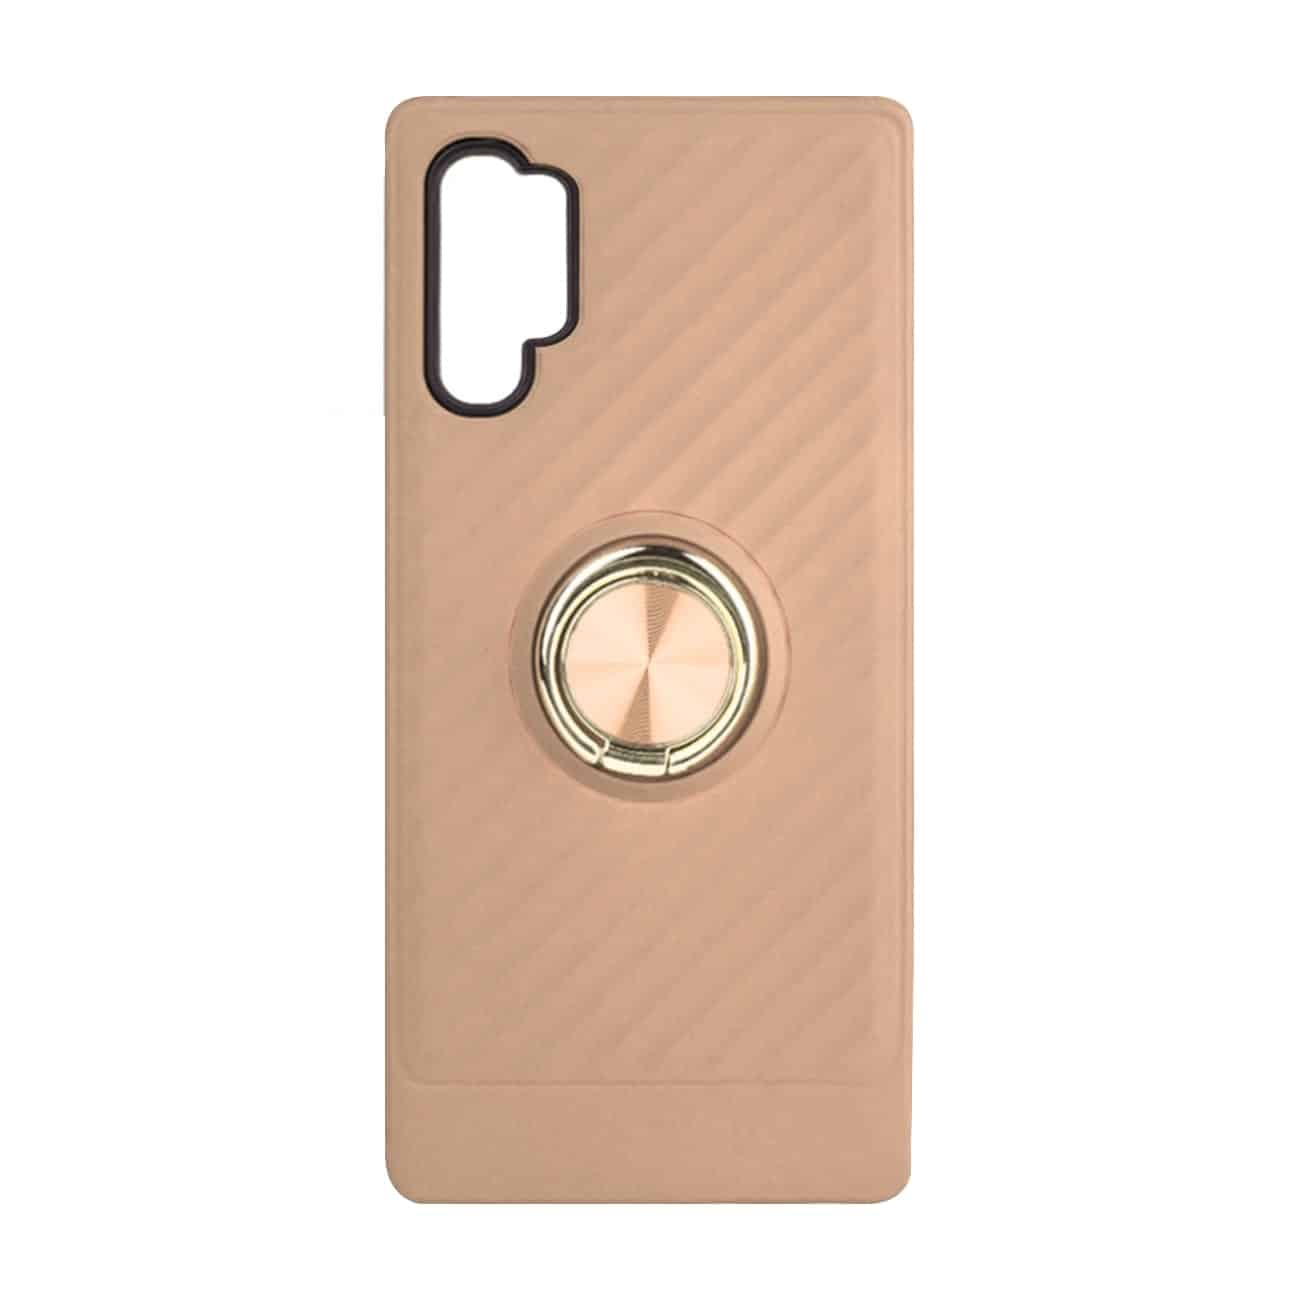 SAMSUNG GALAXY NOTE 10 PLUS Case with Ring Holder InGold